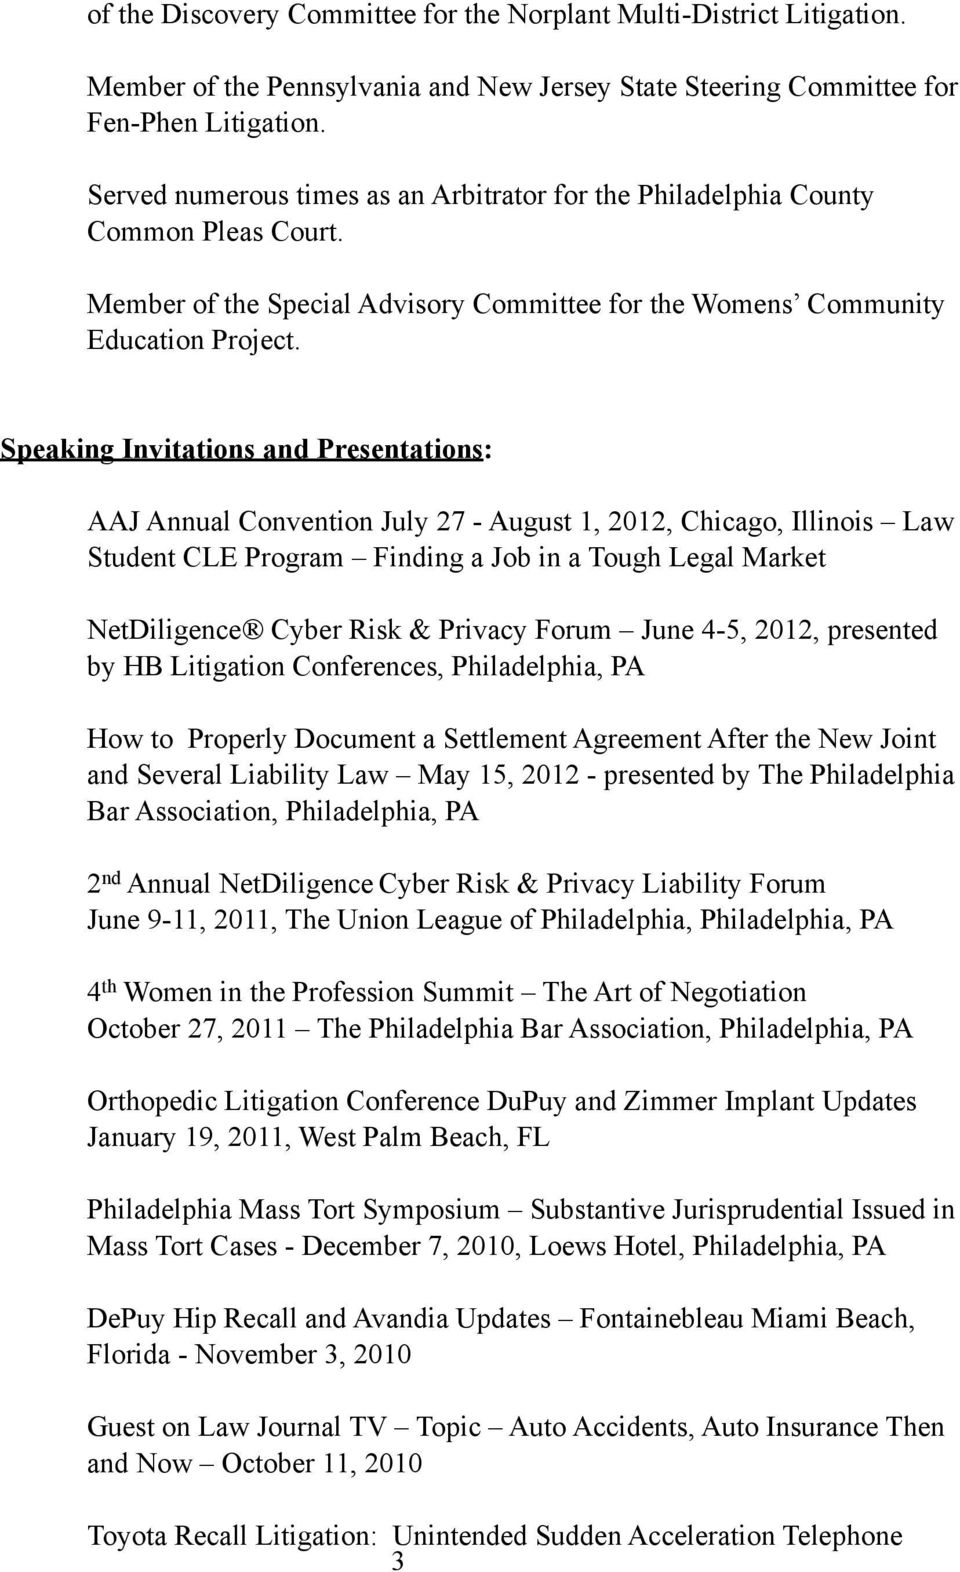 Speaking Invitations and Presentations: AAJ Annual Convention July 27 - August 1, 2012, Chicago, Illinois Law Student CLE Program Finding a Job in a Tough Legal Market NetDiligence Cyber Risk &